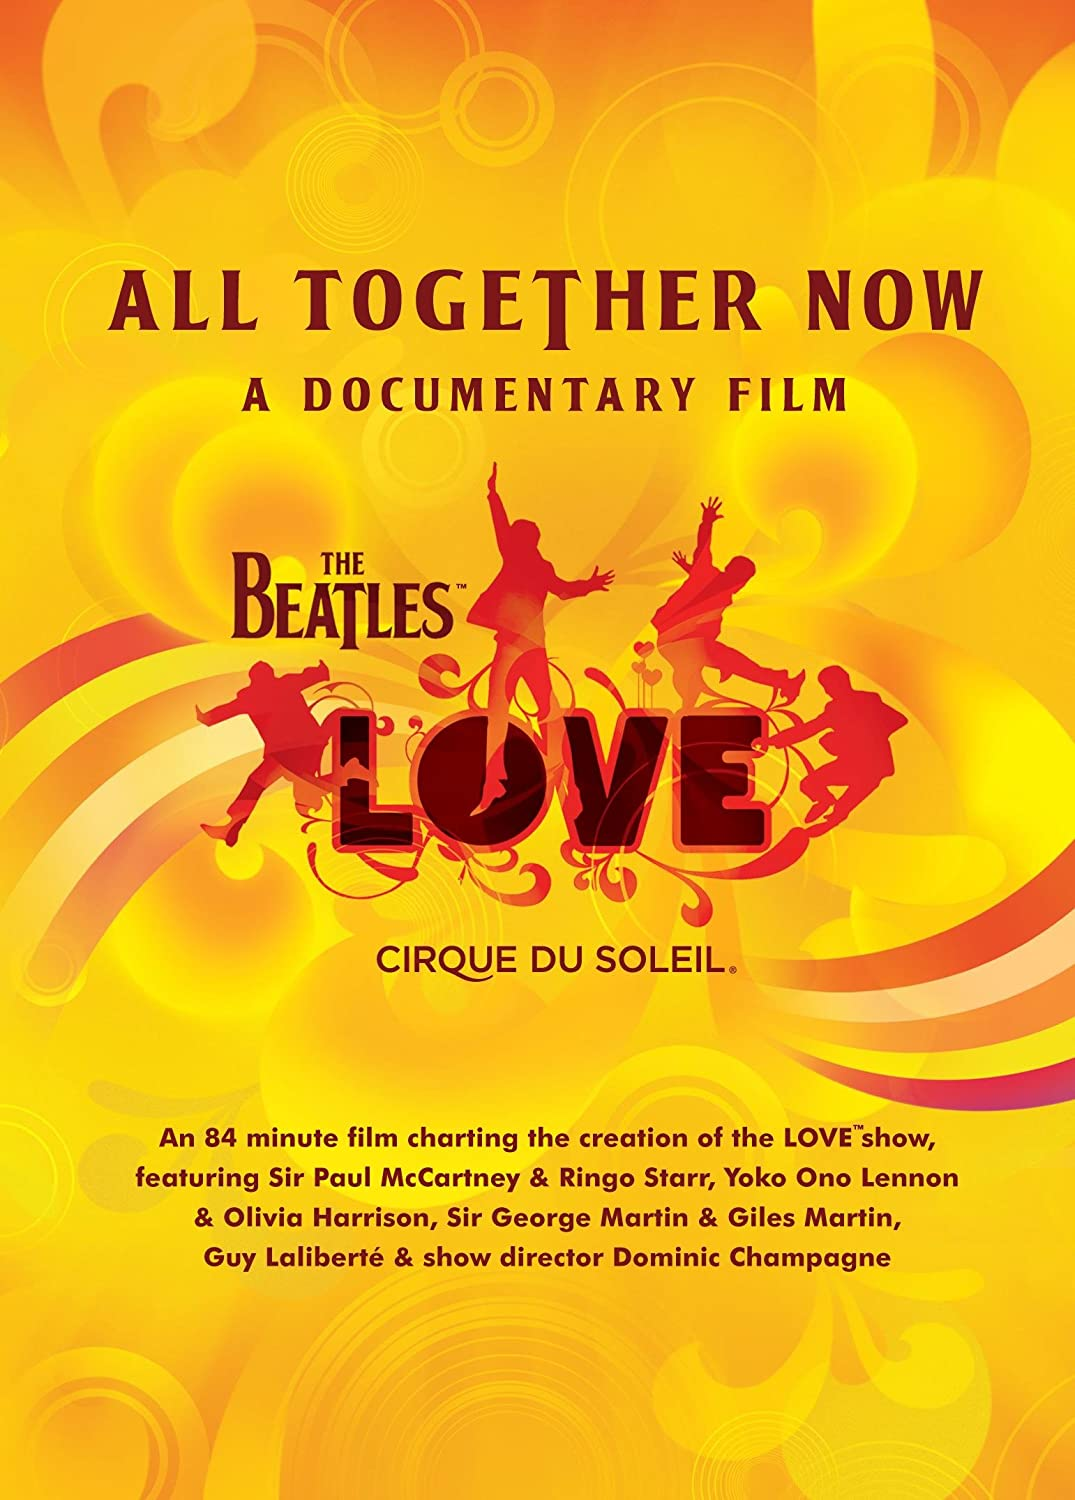 The Beatles - All Together Now [USA] [DVD]: Amazon.es: The Beatles, The Beatles, Adrian Wills, The Beatles, Martin Bolduc, Jonathan Clyde: Cine y Series TV